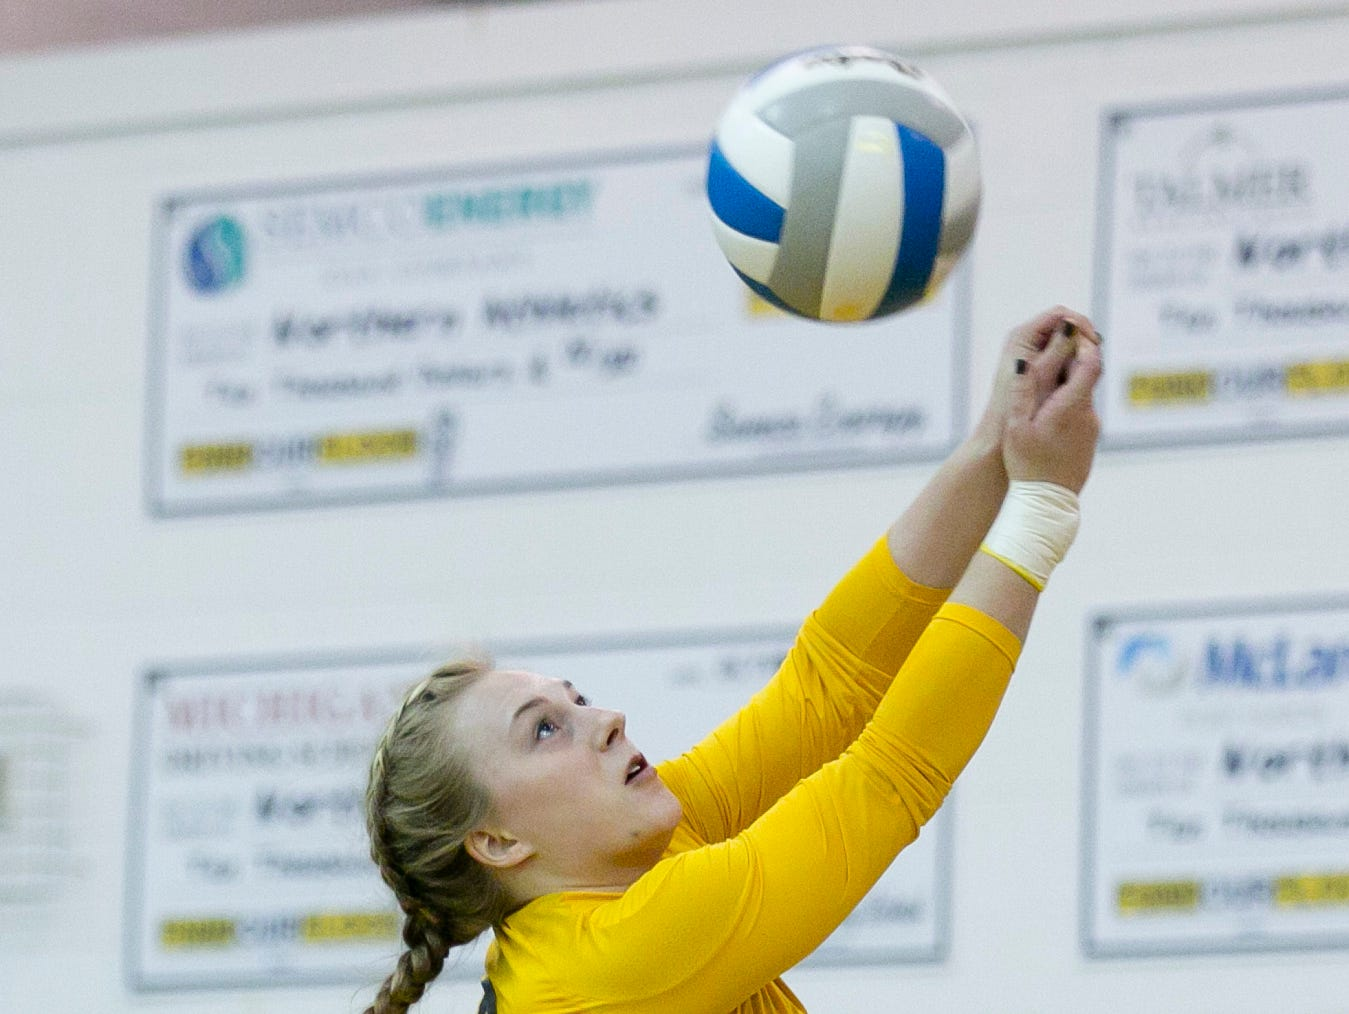 Port Huron Northern senior Jillian Rusch hits the ball during a volleyball game Tuesday, October 27, 2015 at Port Huron Northern High School.